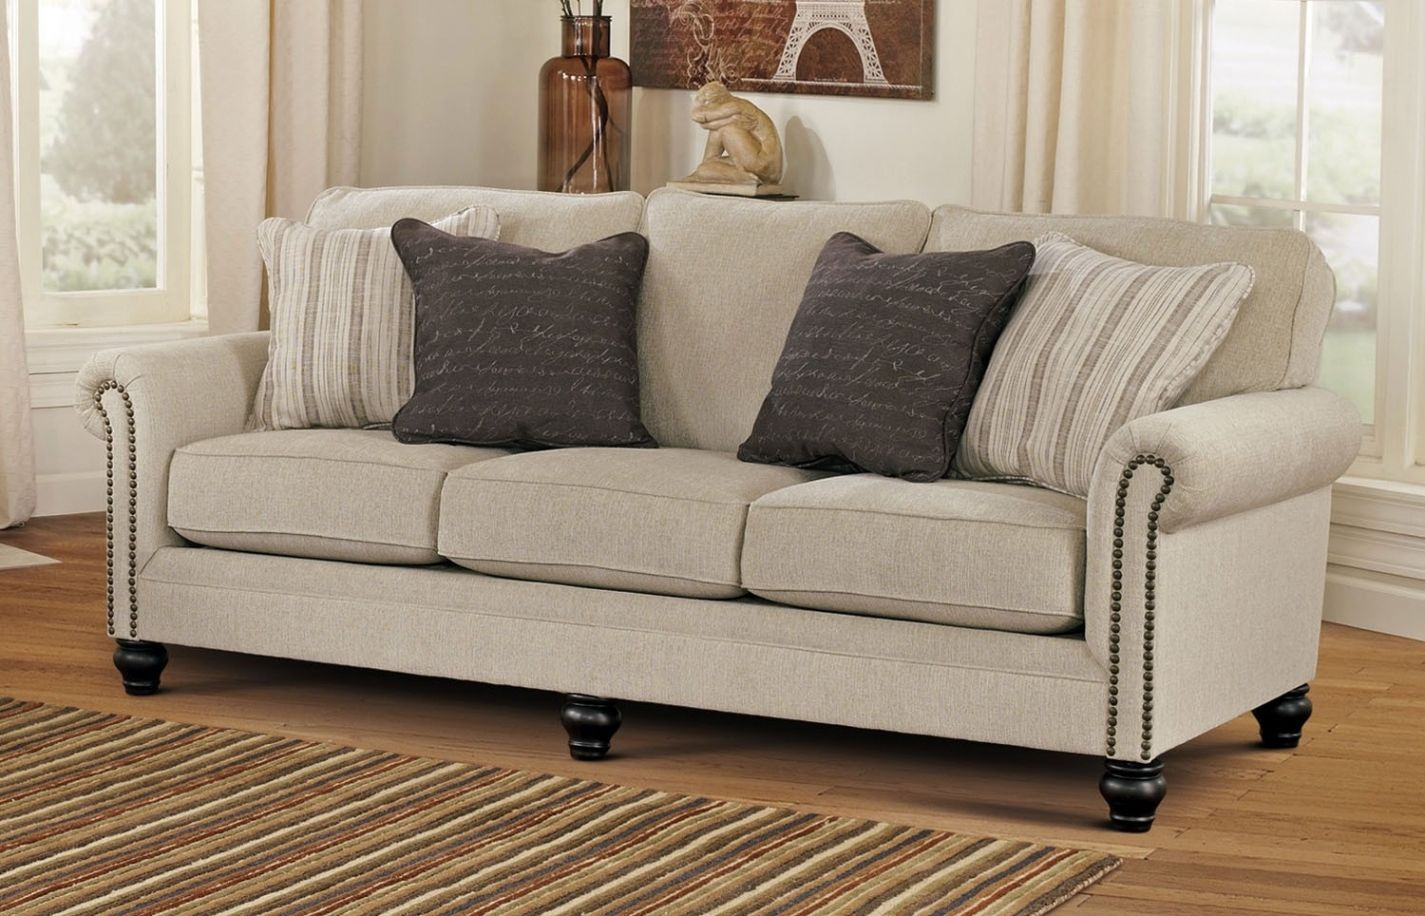 lovely milari linen sofa model-Sensational Milari Linen sofa Photograph